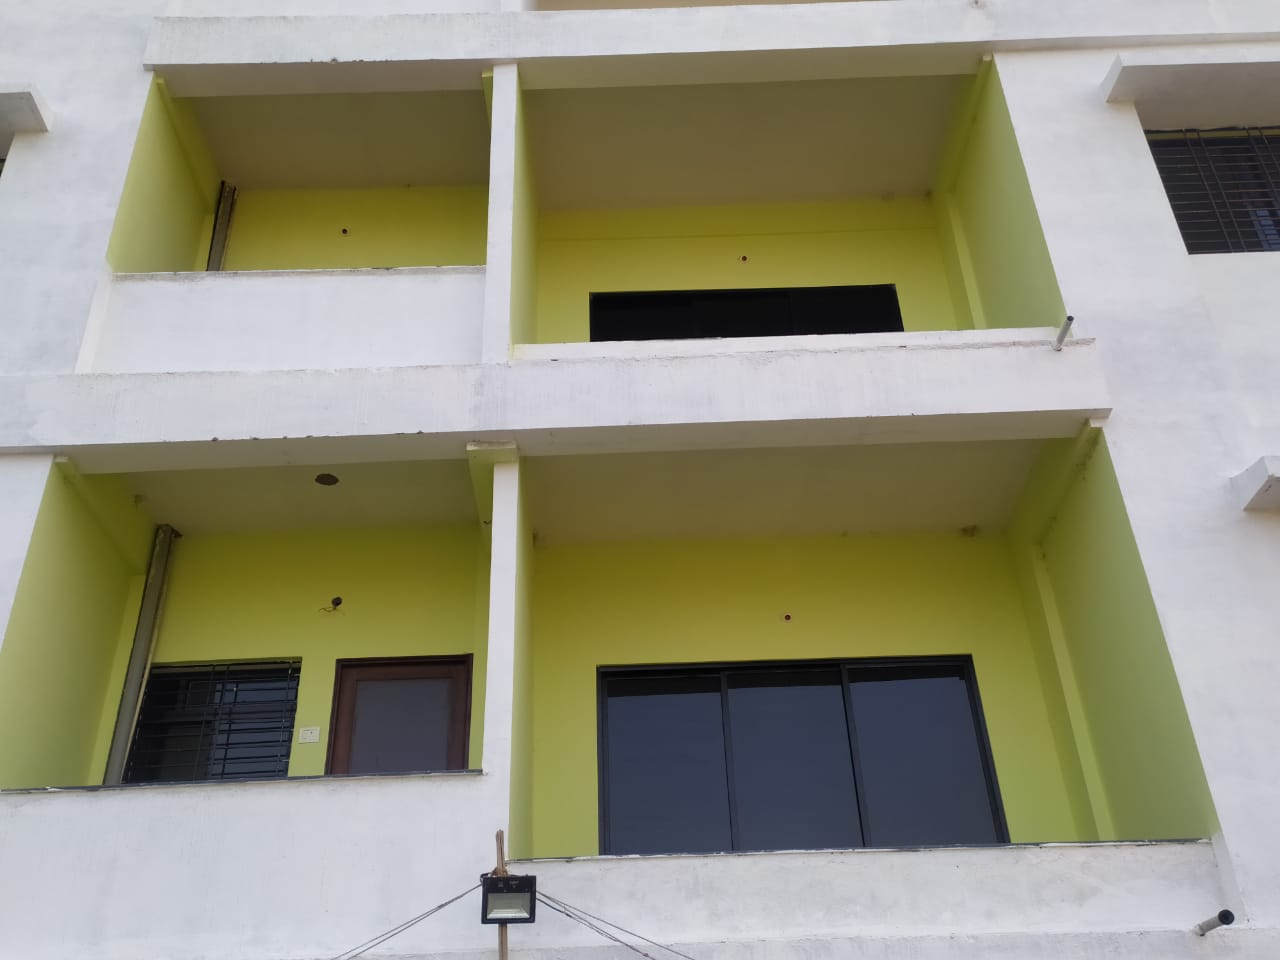 3BHK Flat in Jamtha